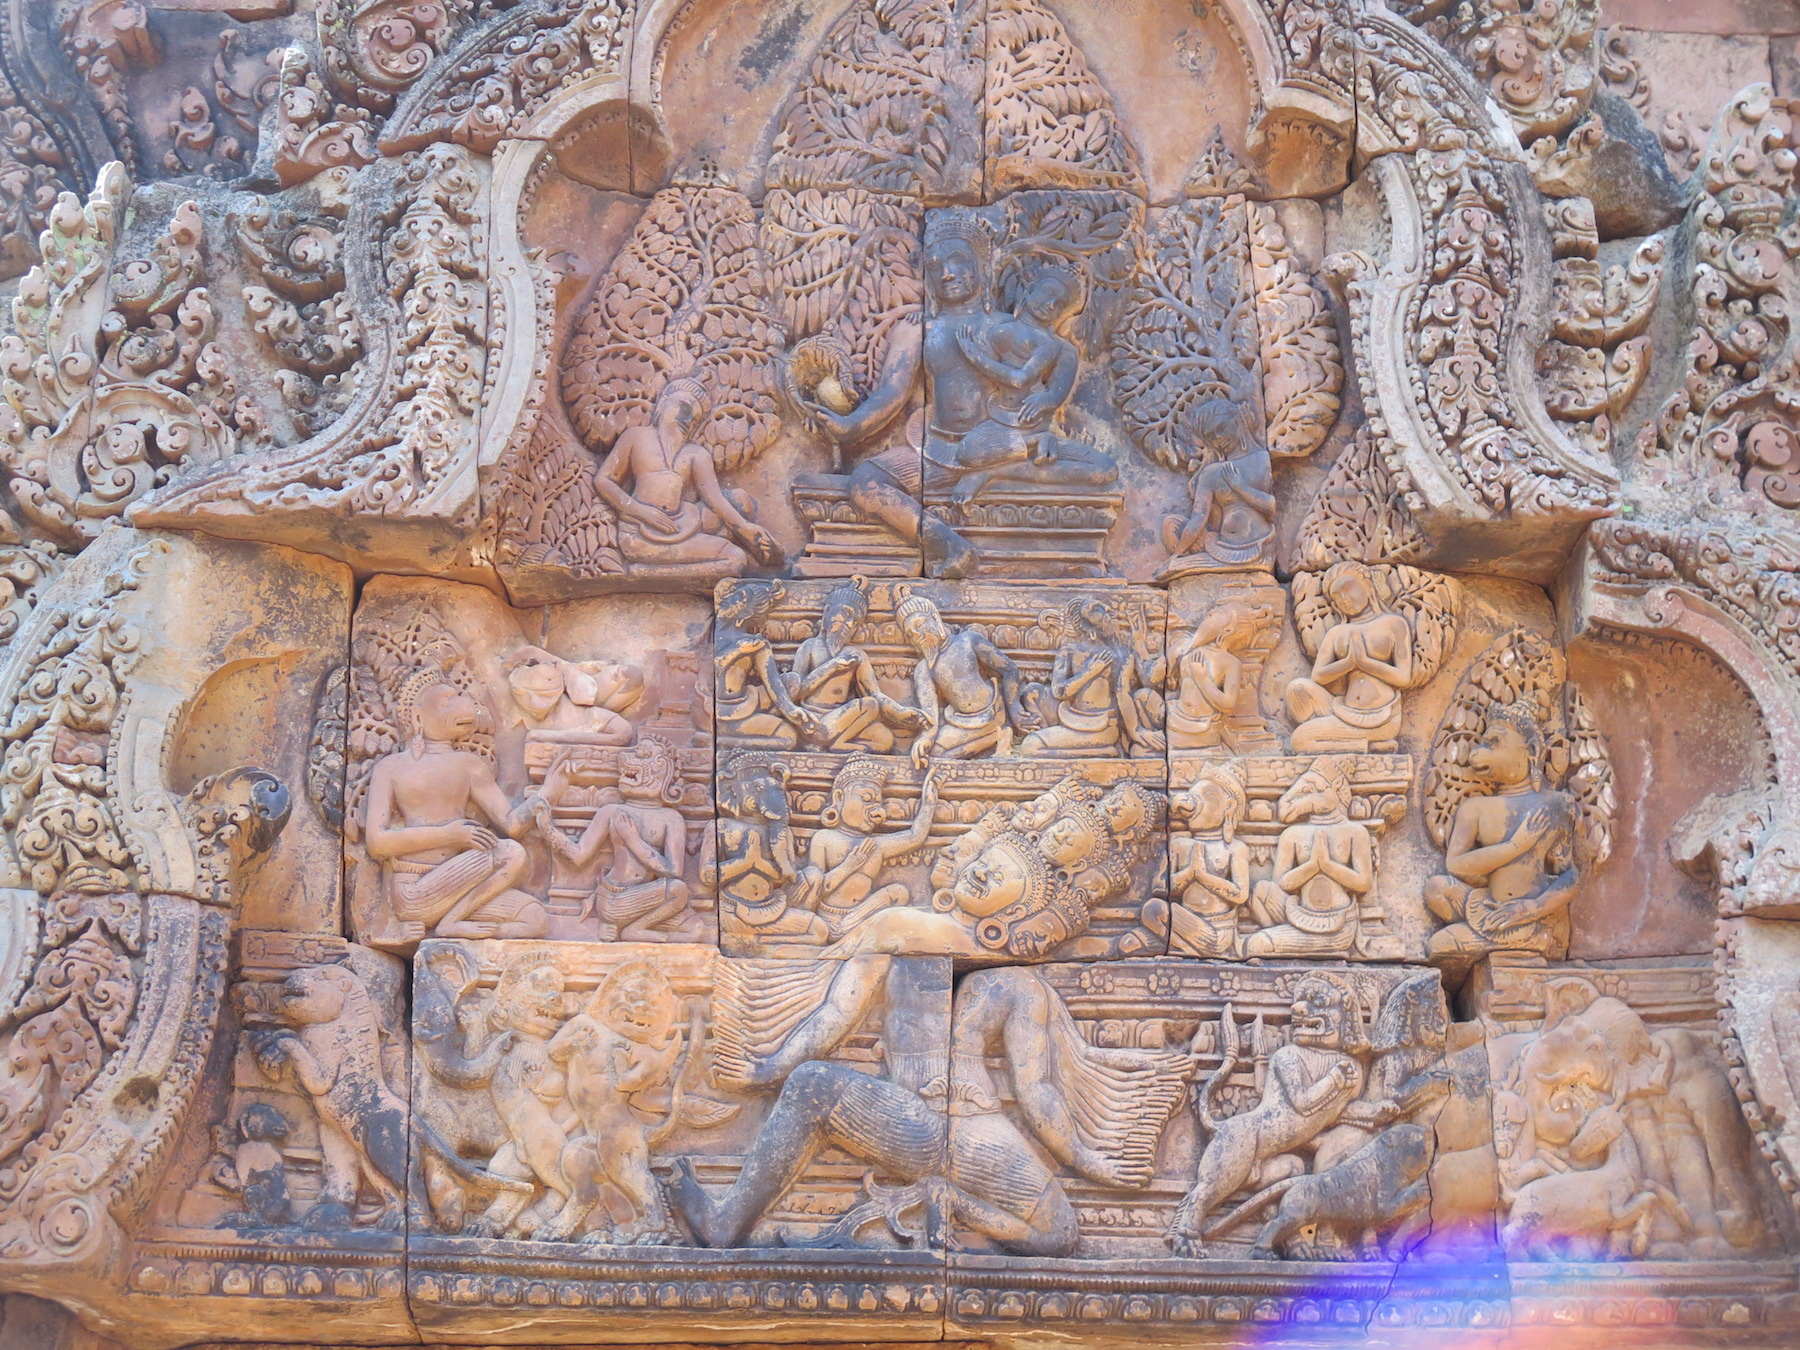 Ravana shaking Mount Kailash where Lord Siva and Parvati are seated